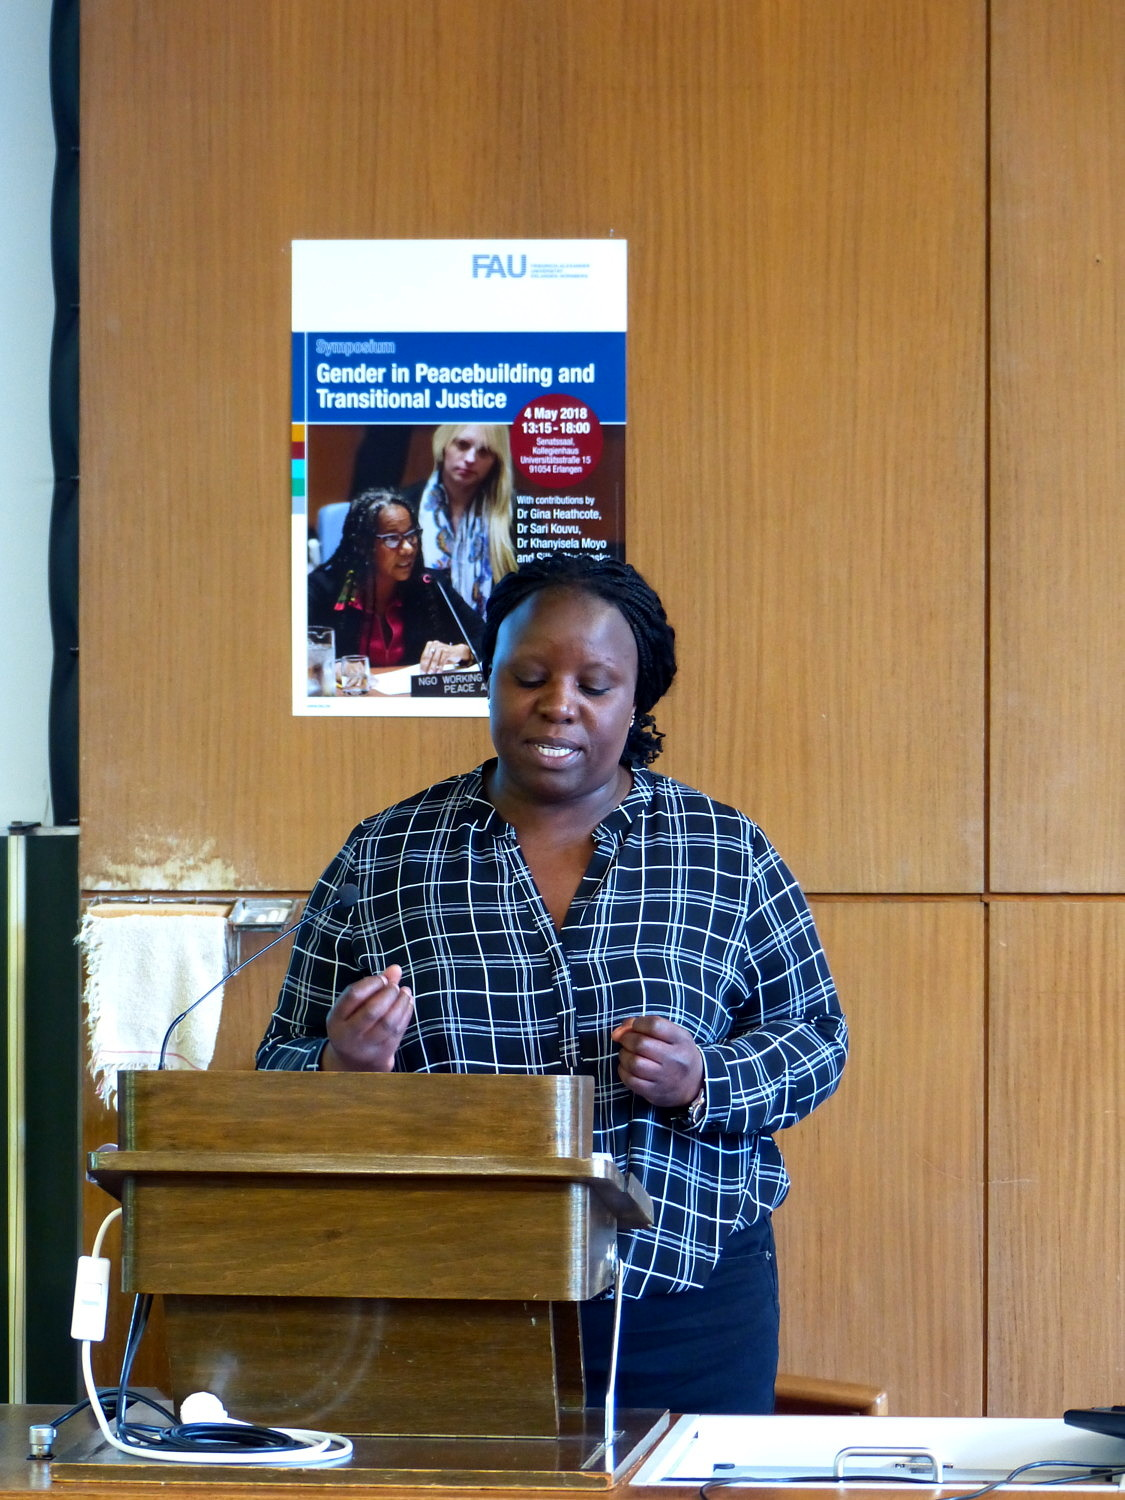 Dr. Khanyisela Moyo speaks at the Symposium on Gender and Peacebuilding and Transitional Justice